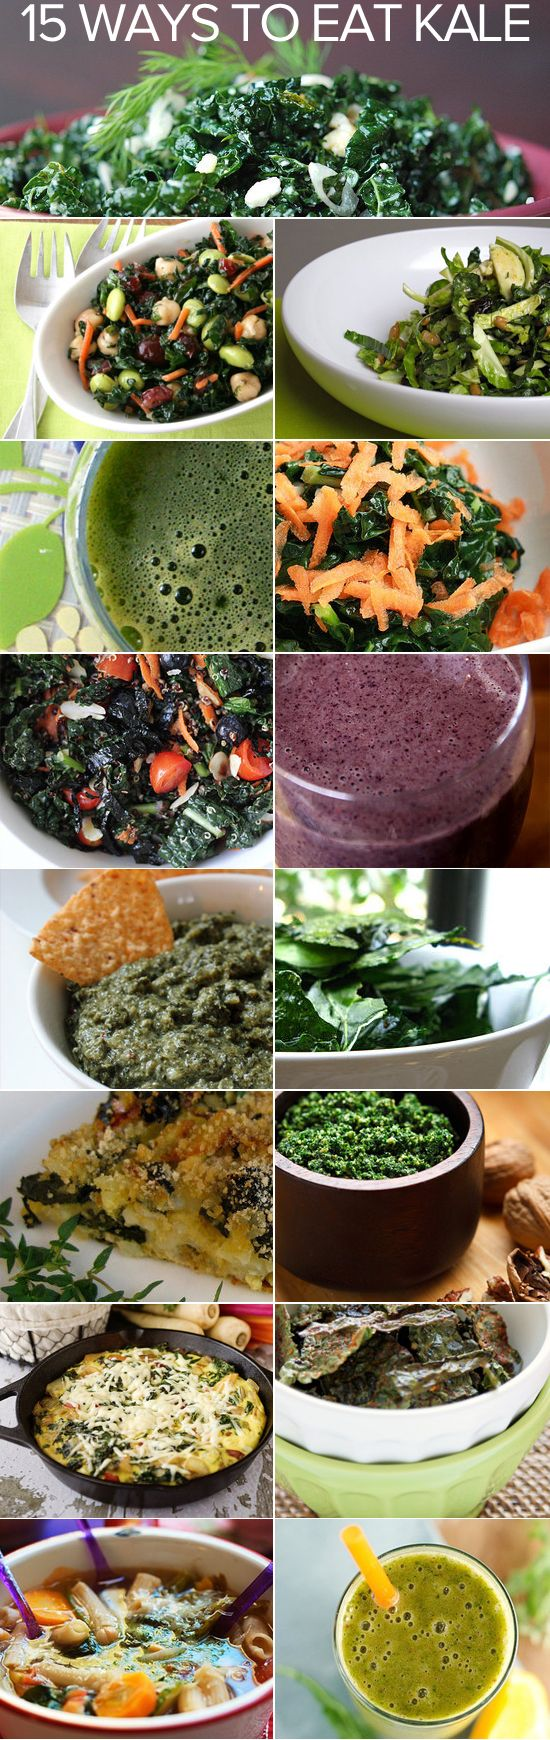 15 ways to eat Kale - not all primal, but most seem to be, or could easily be adapted